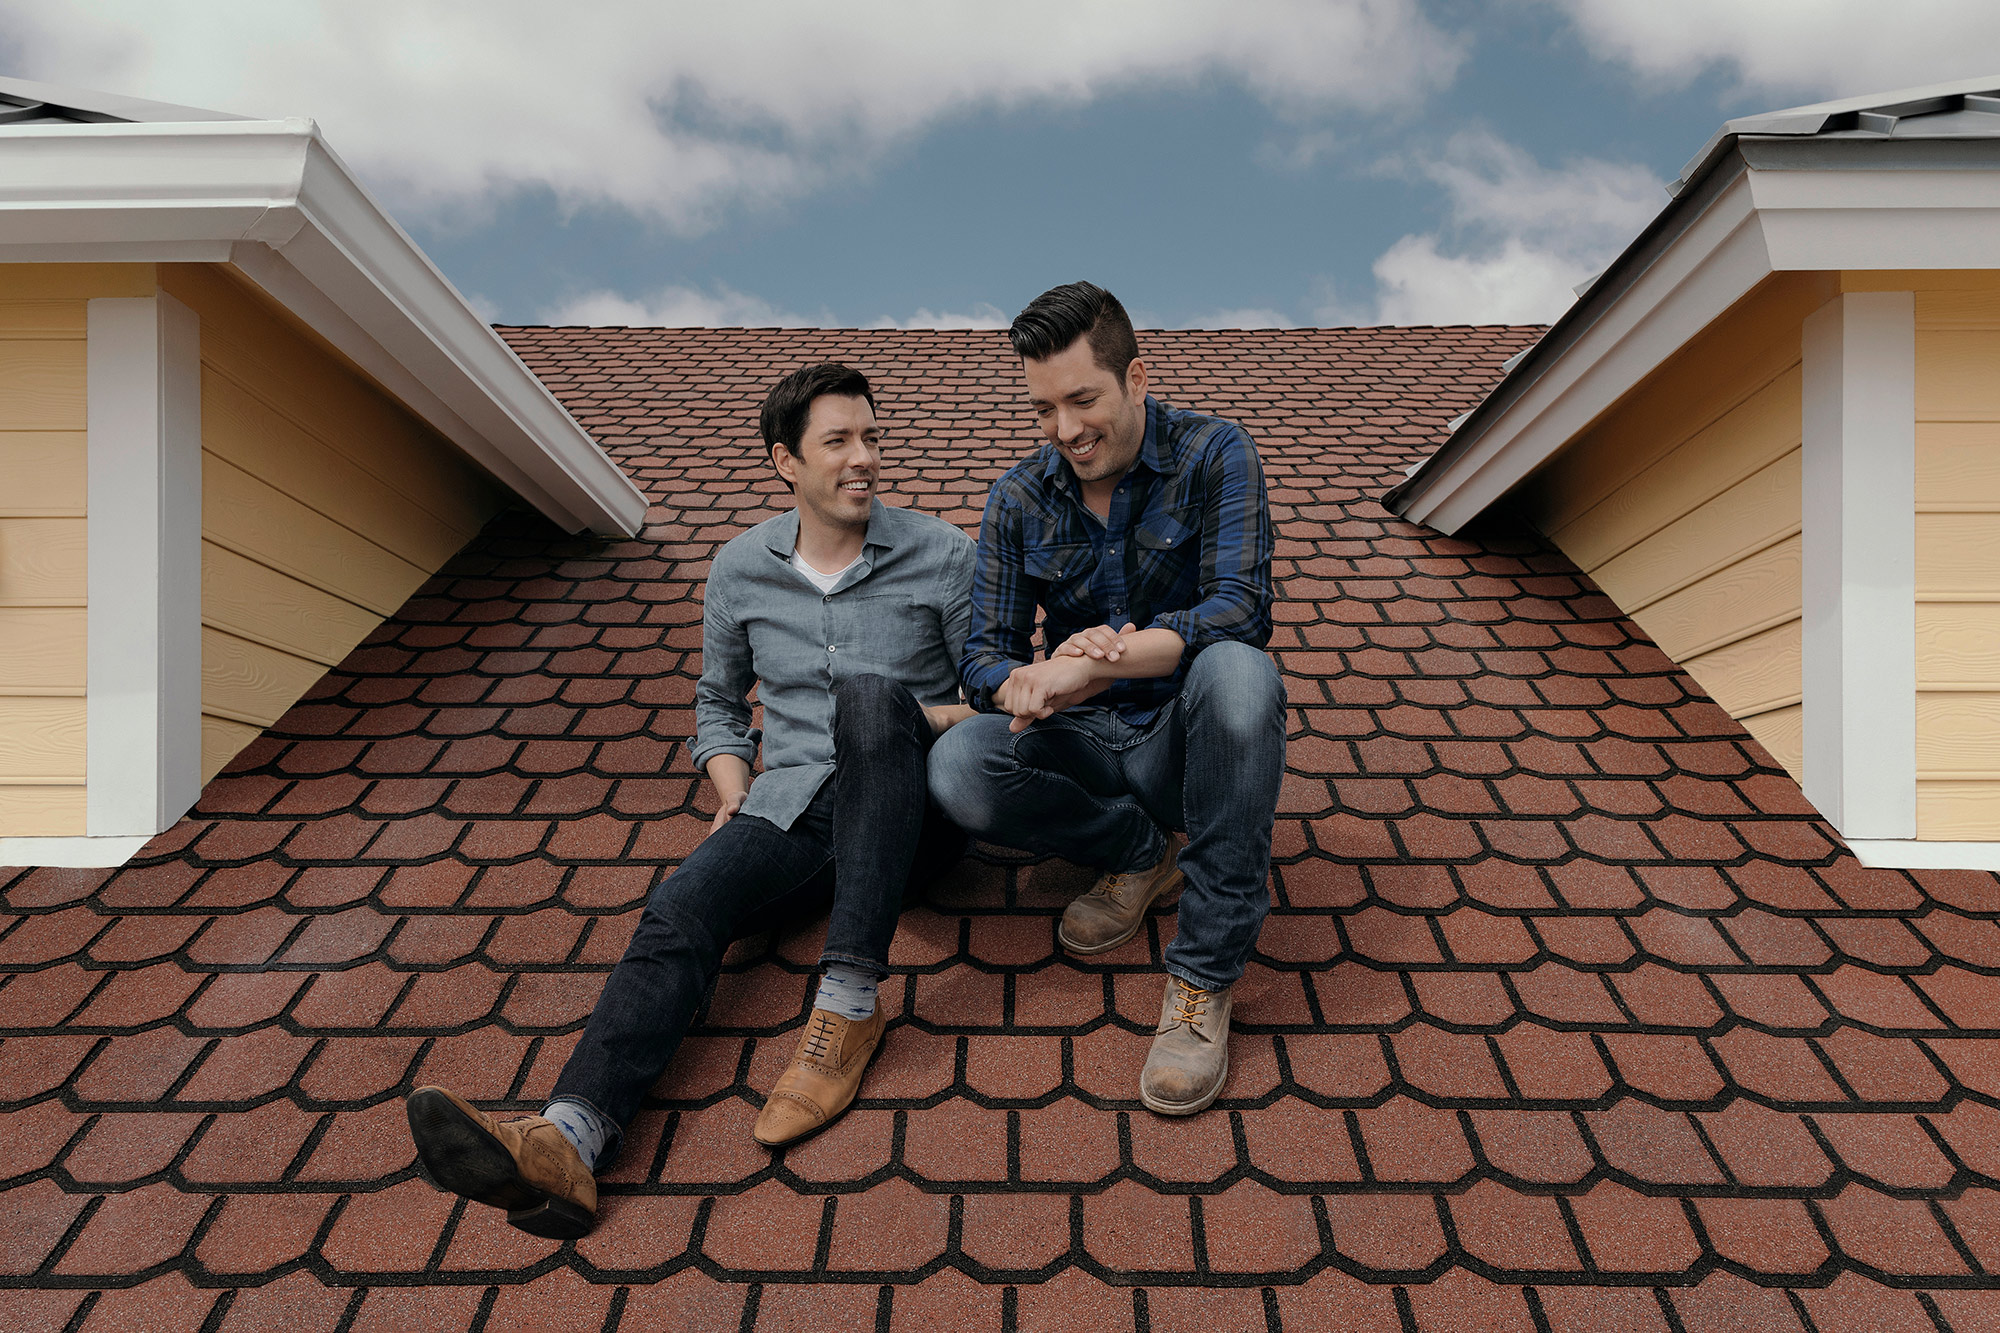 The Property Brothers,  Jonathan and Drew Scott, photographed in Galveston, Texas for The New York Times by commercial and editorial photographer, Todd Spoth, based out of Houston, Texas, USA.